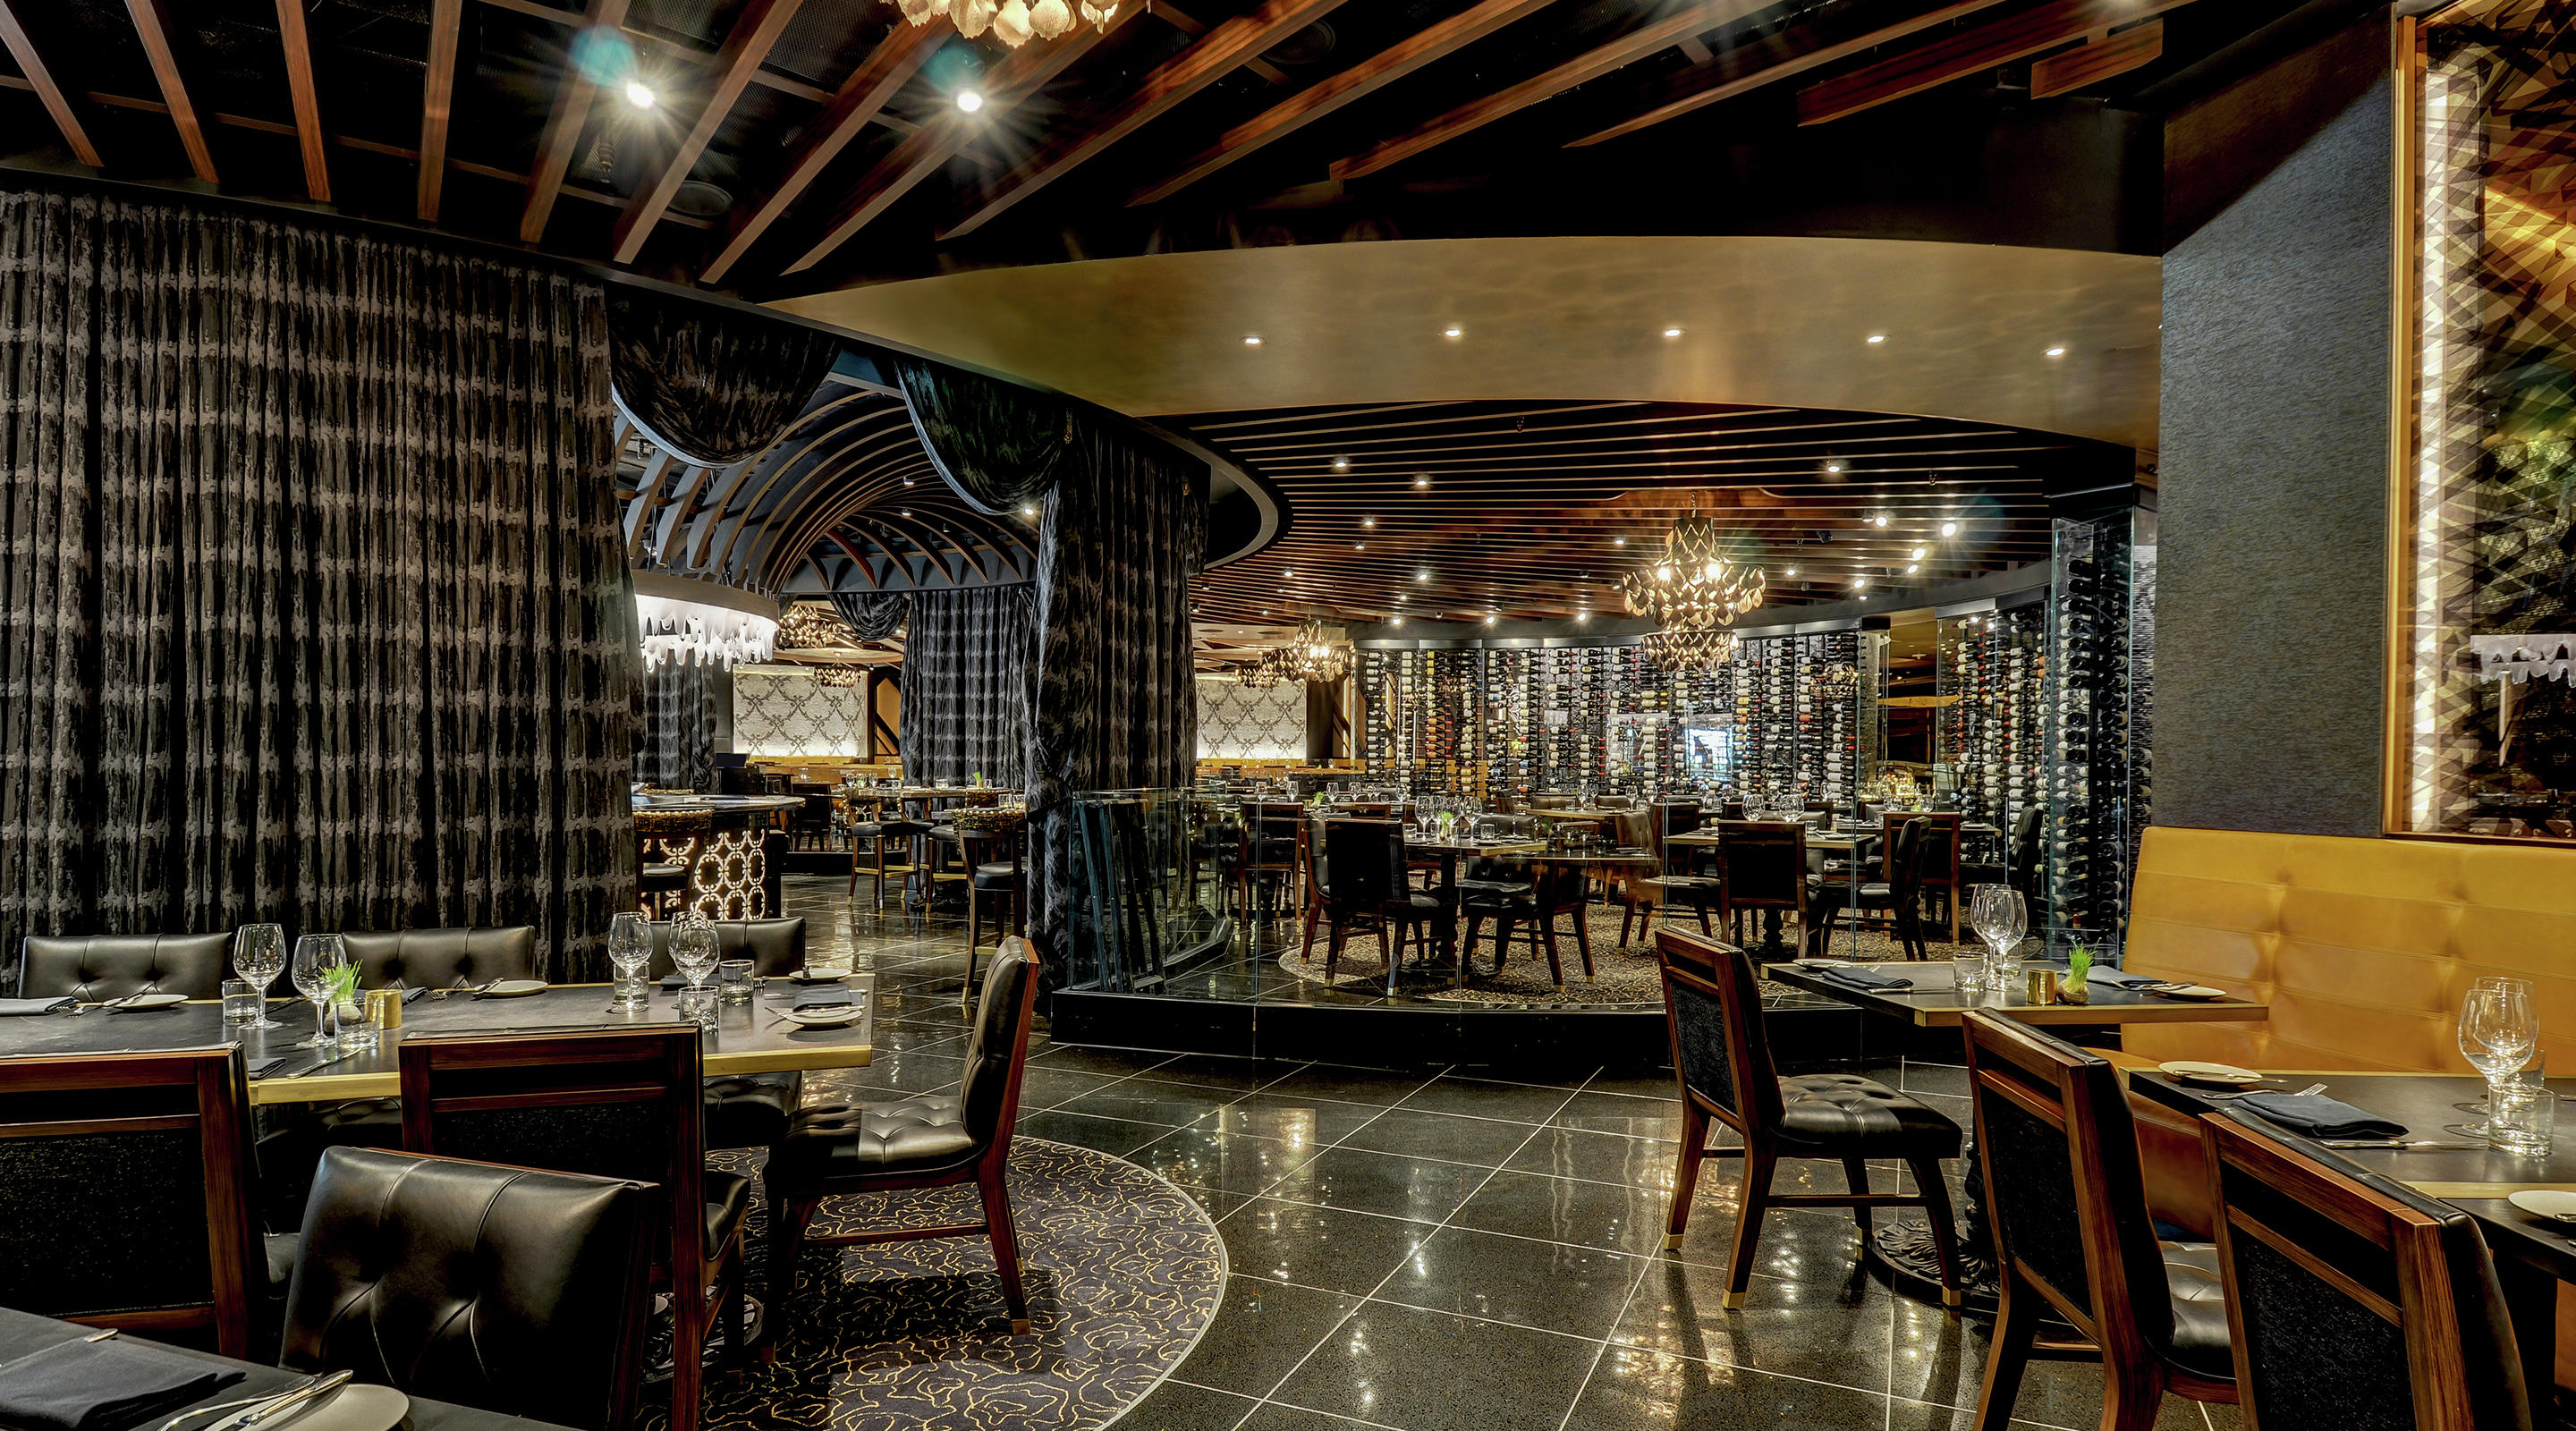 Main dining area in Jean Georges Steakhouse.